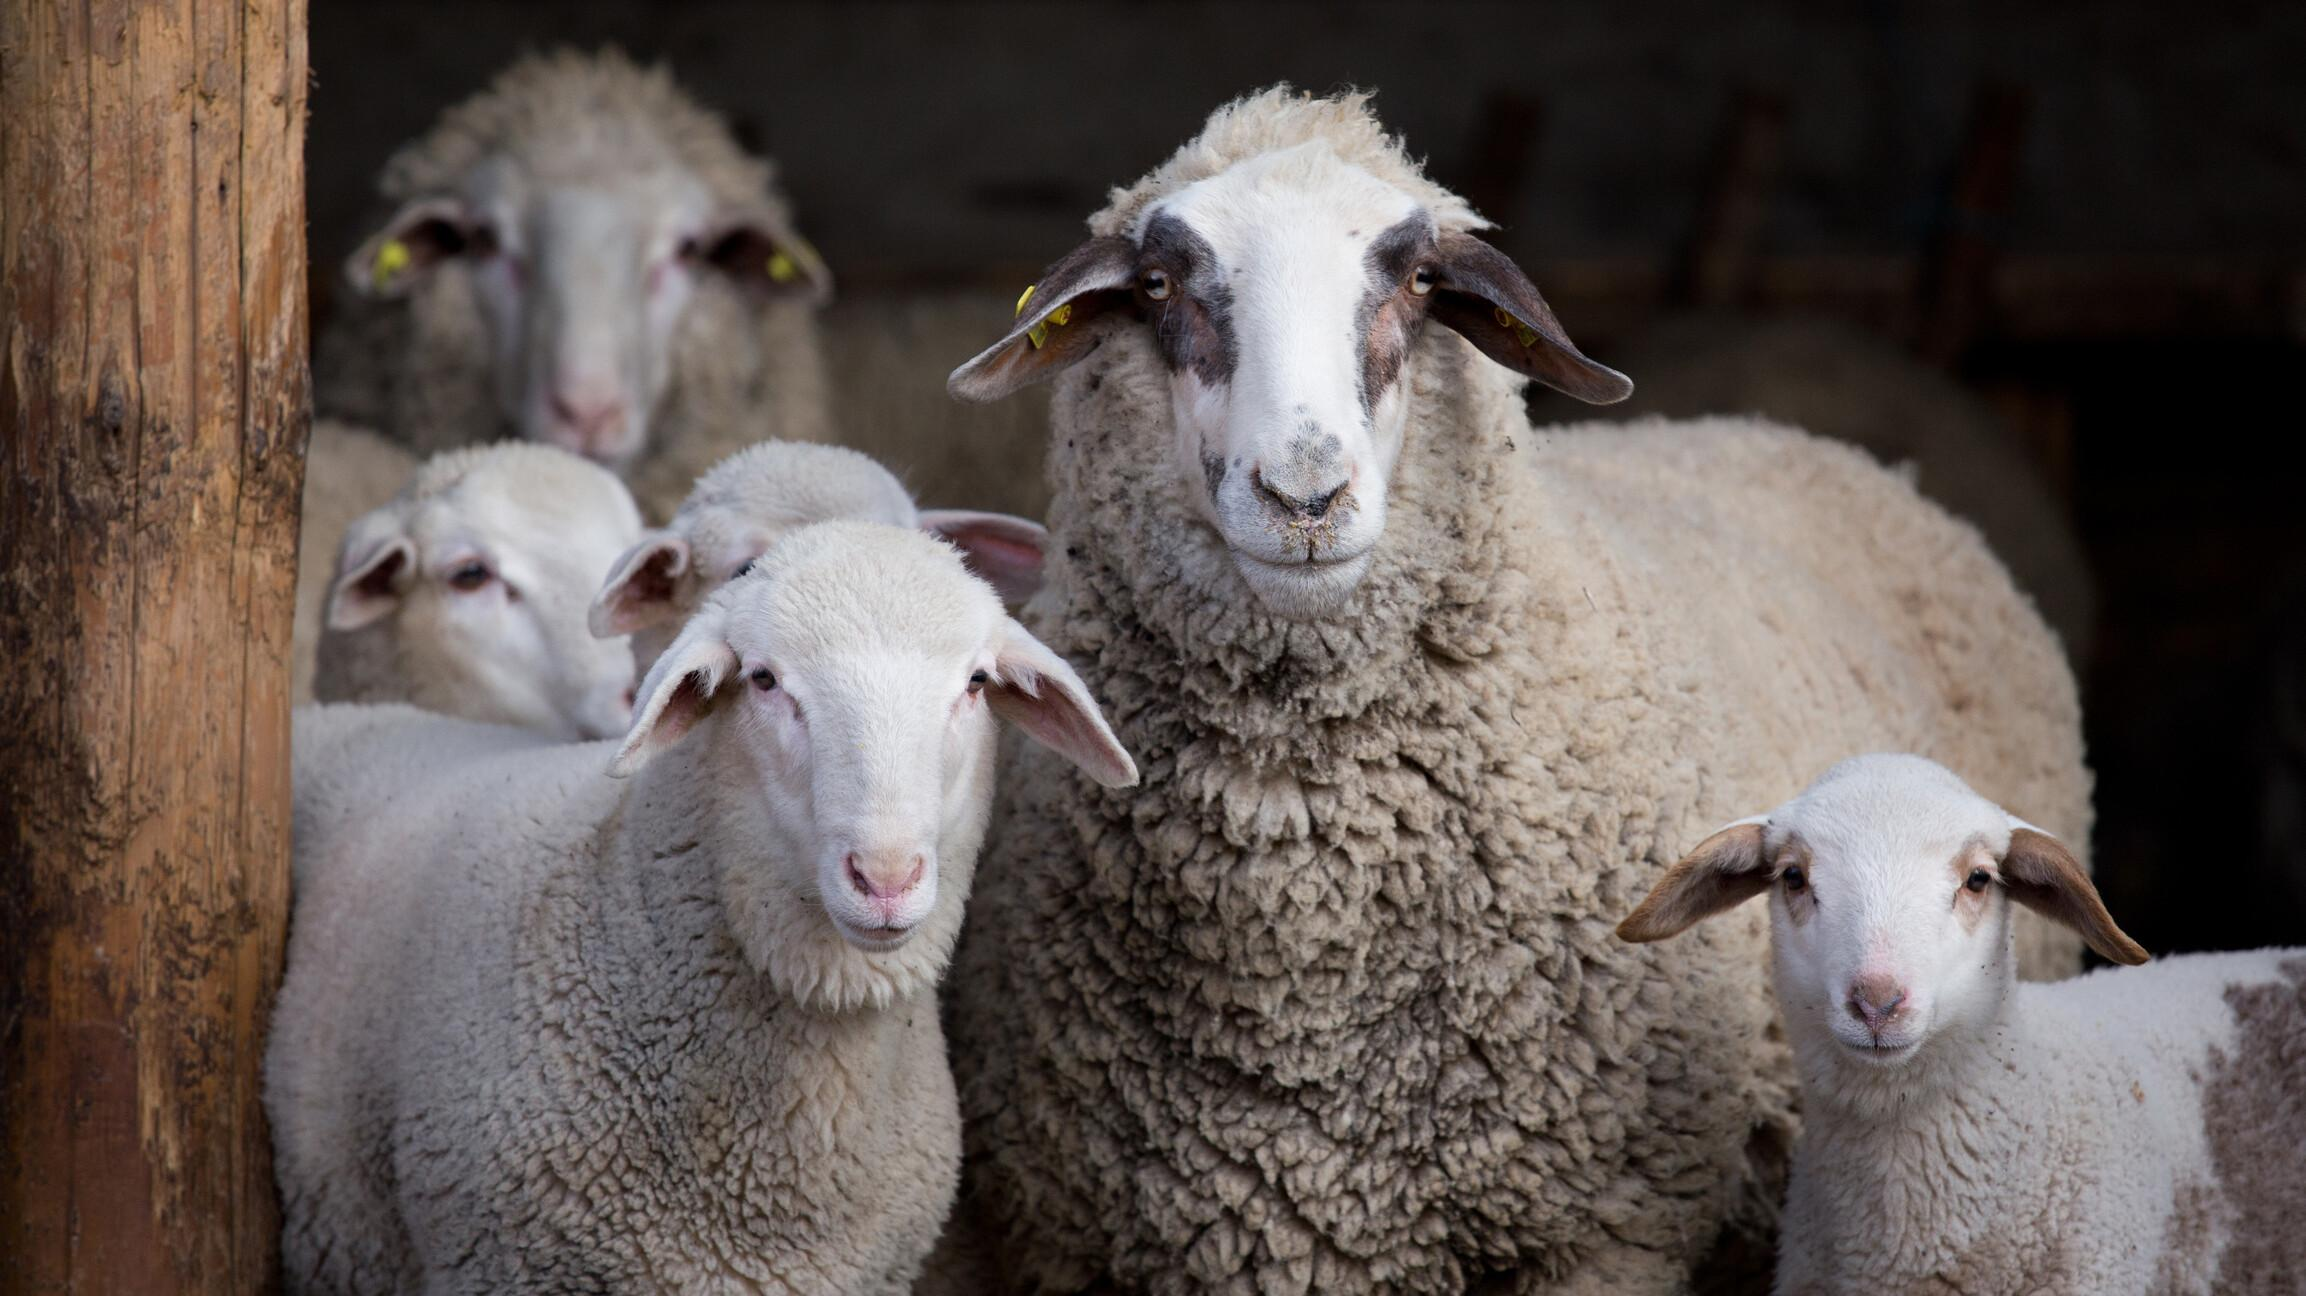 Sheep flock with lambs standing in barn